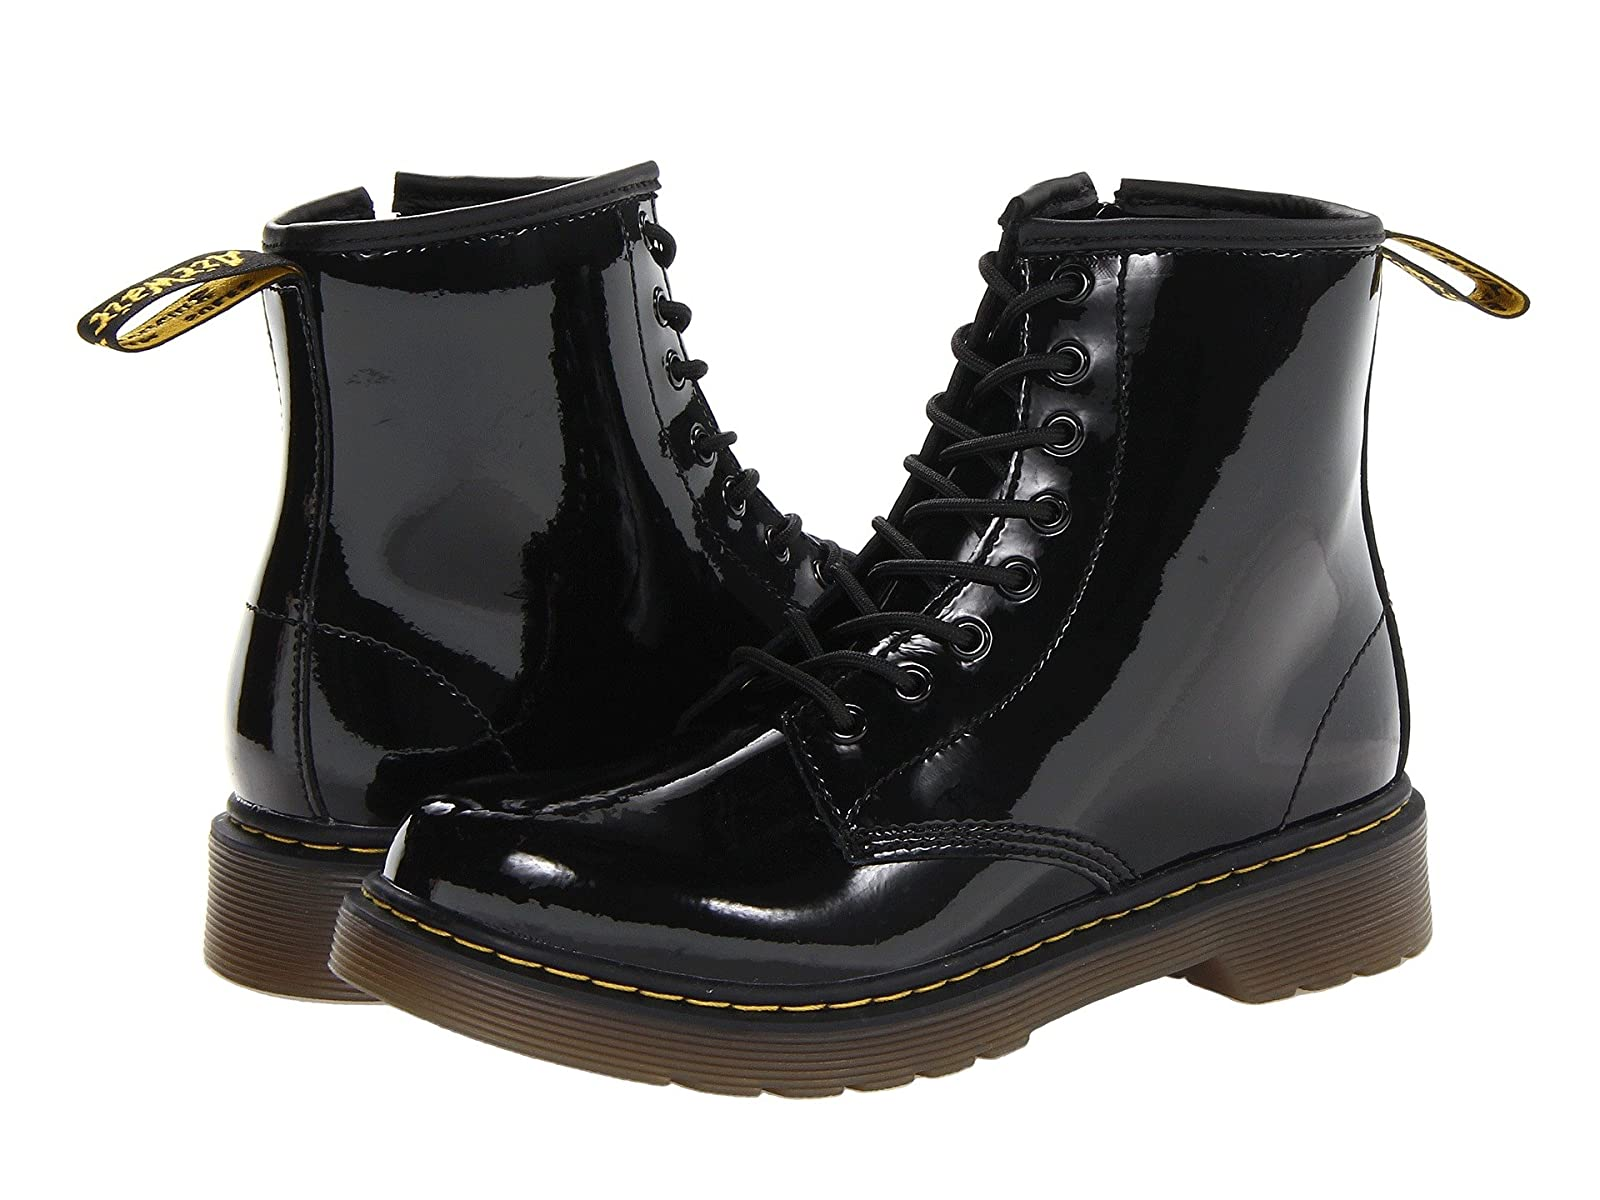 Dr. Martens Kid's Collection 1460 Junior Delaney Boot (Little Kid/Big Kid)Affordable and distinctive shoes